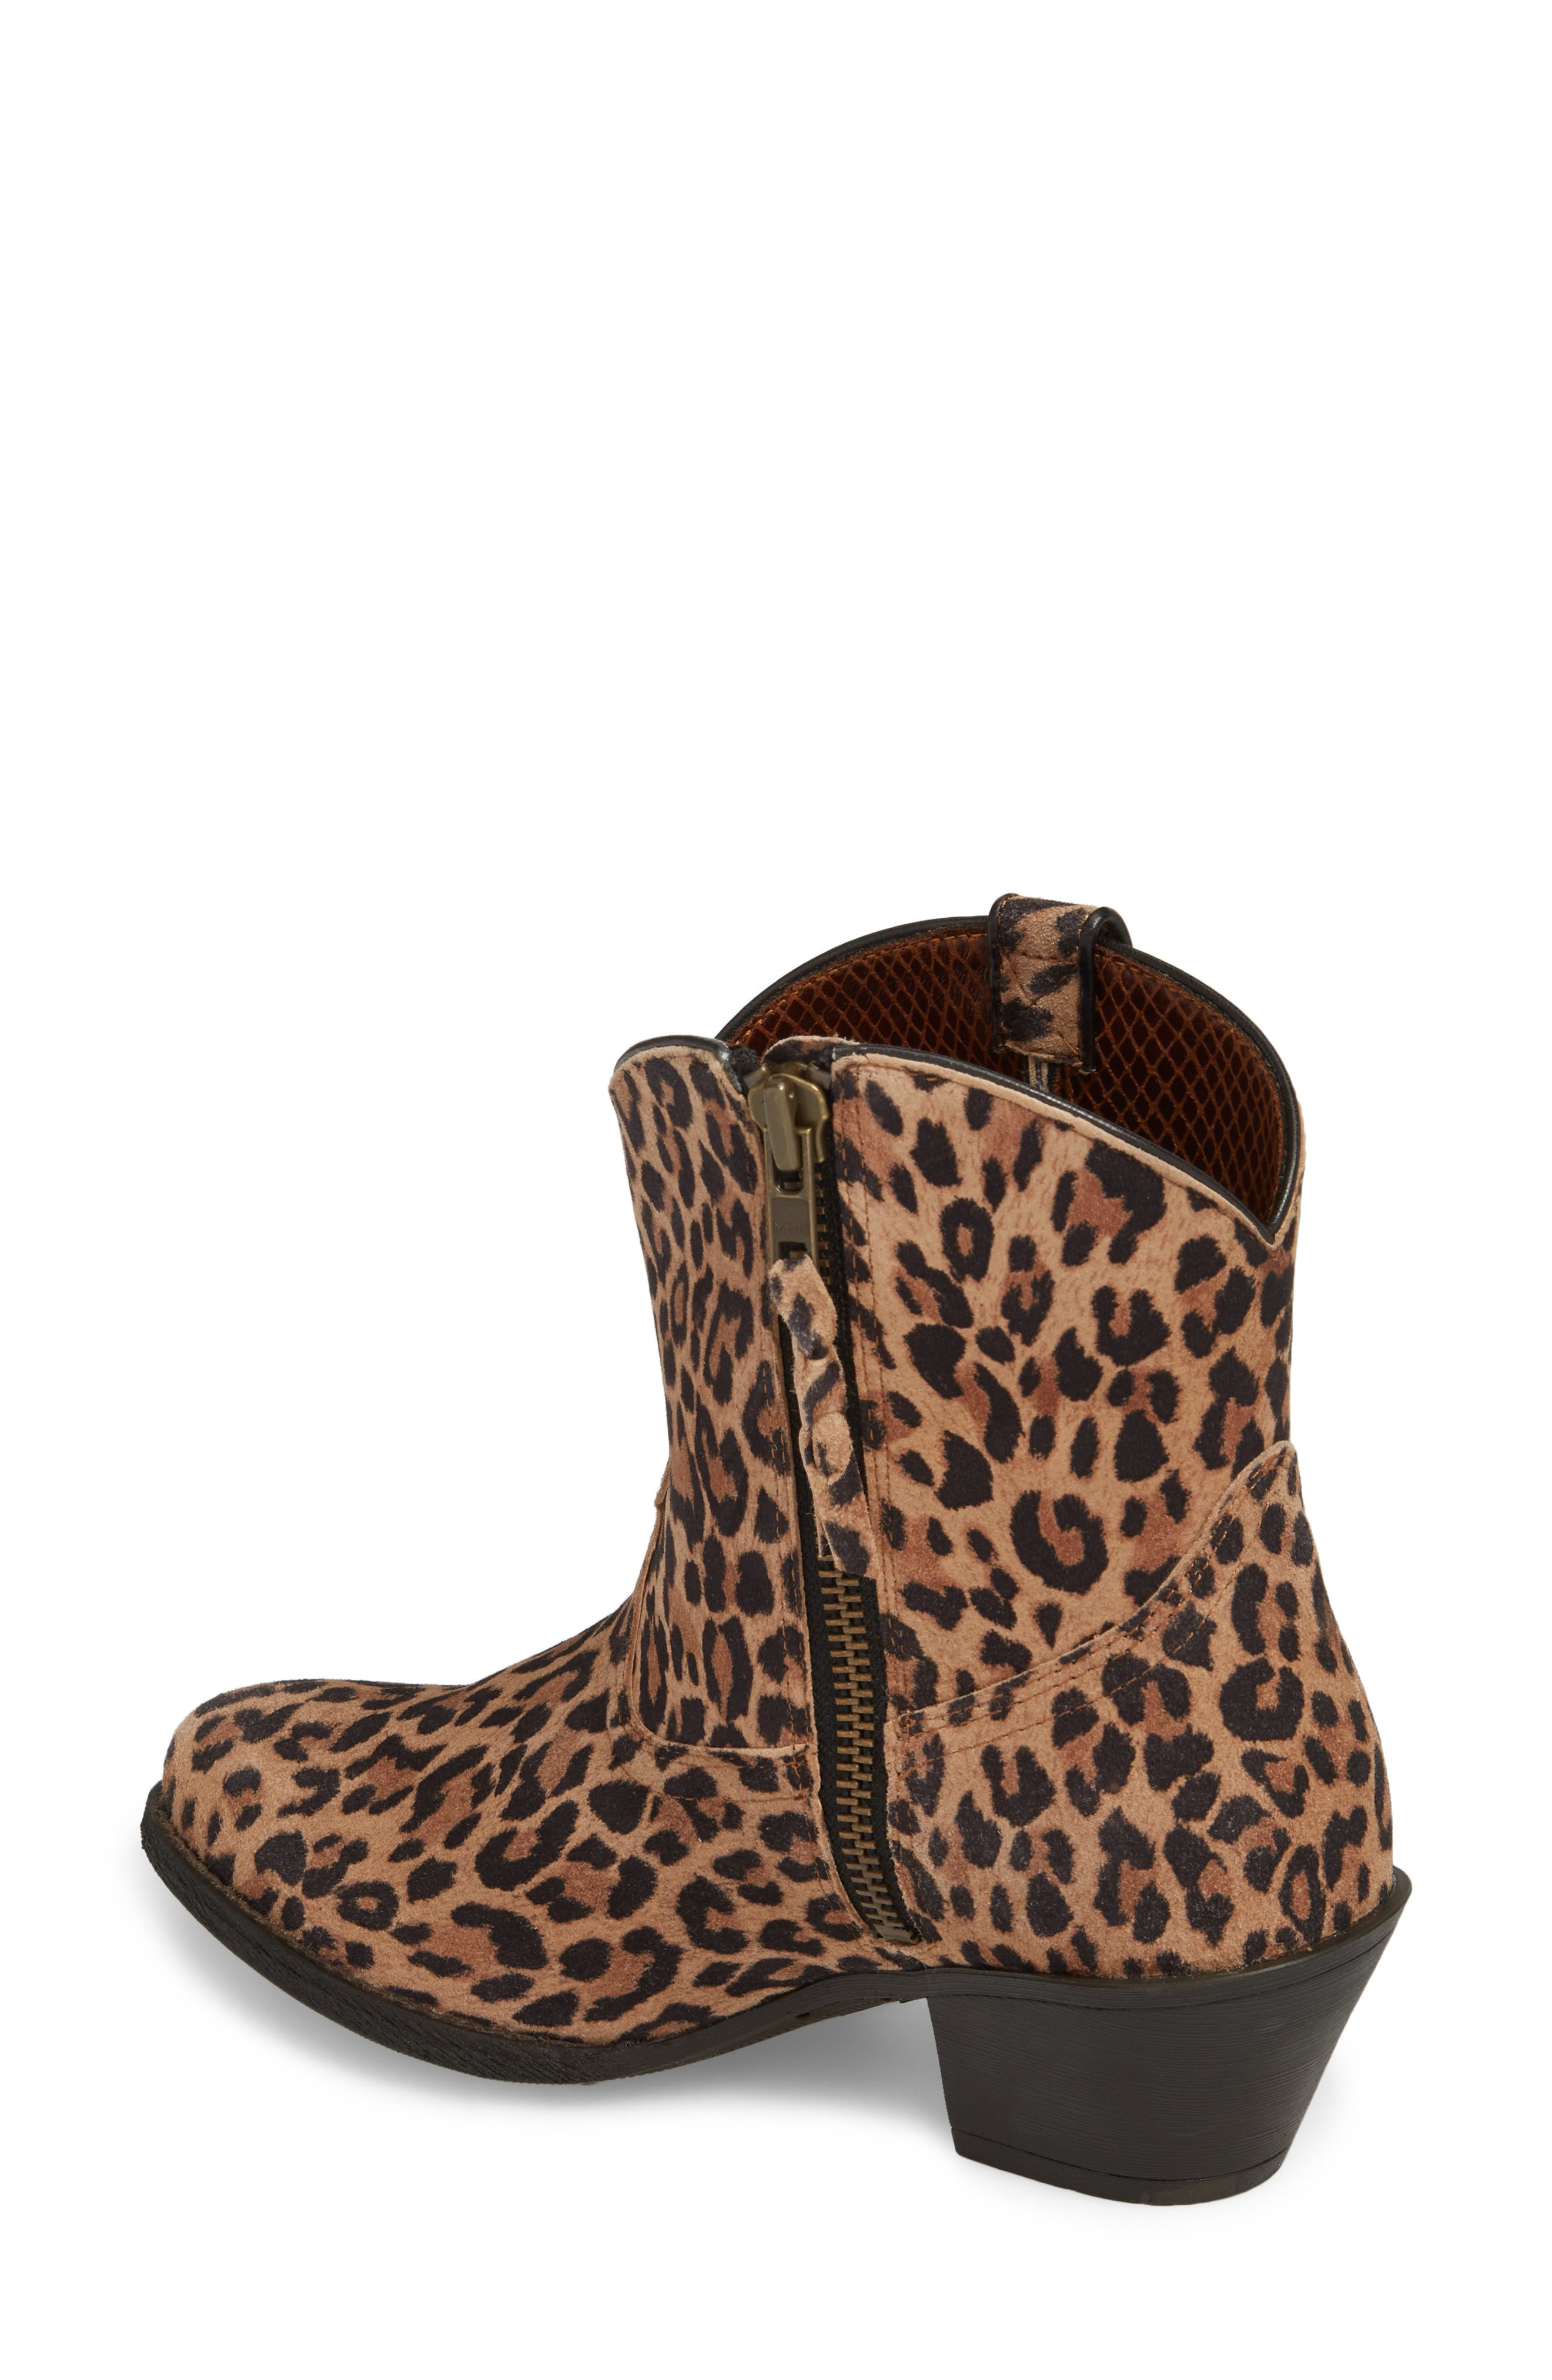 Darlin Short Western Boot,                             Alternate thumbnail 2, color,                             LEOPARD PRINT LEATHER